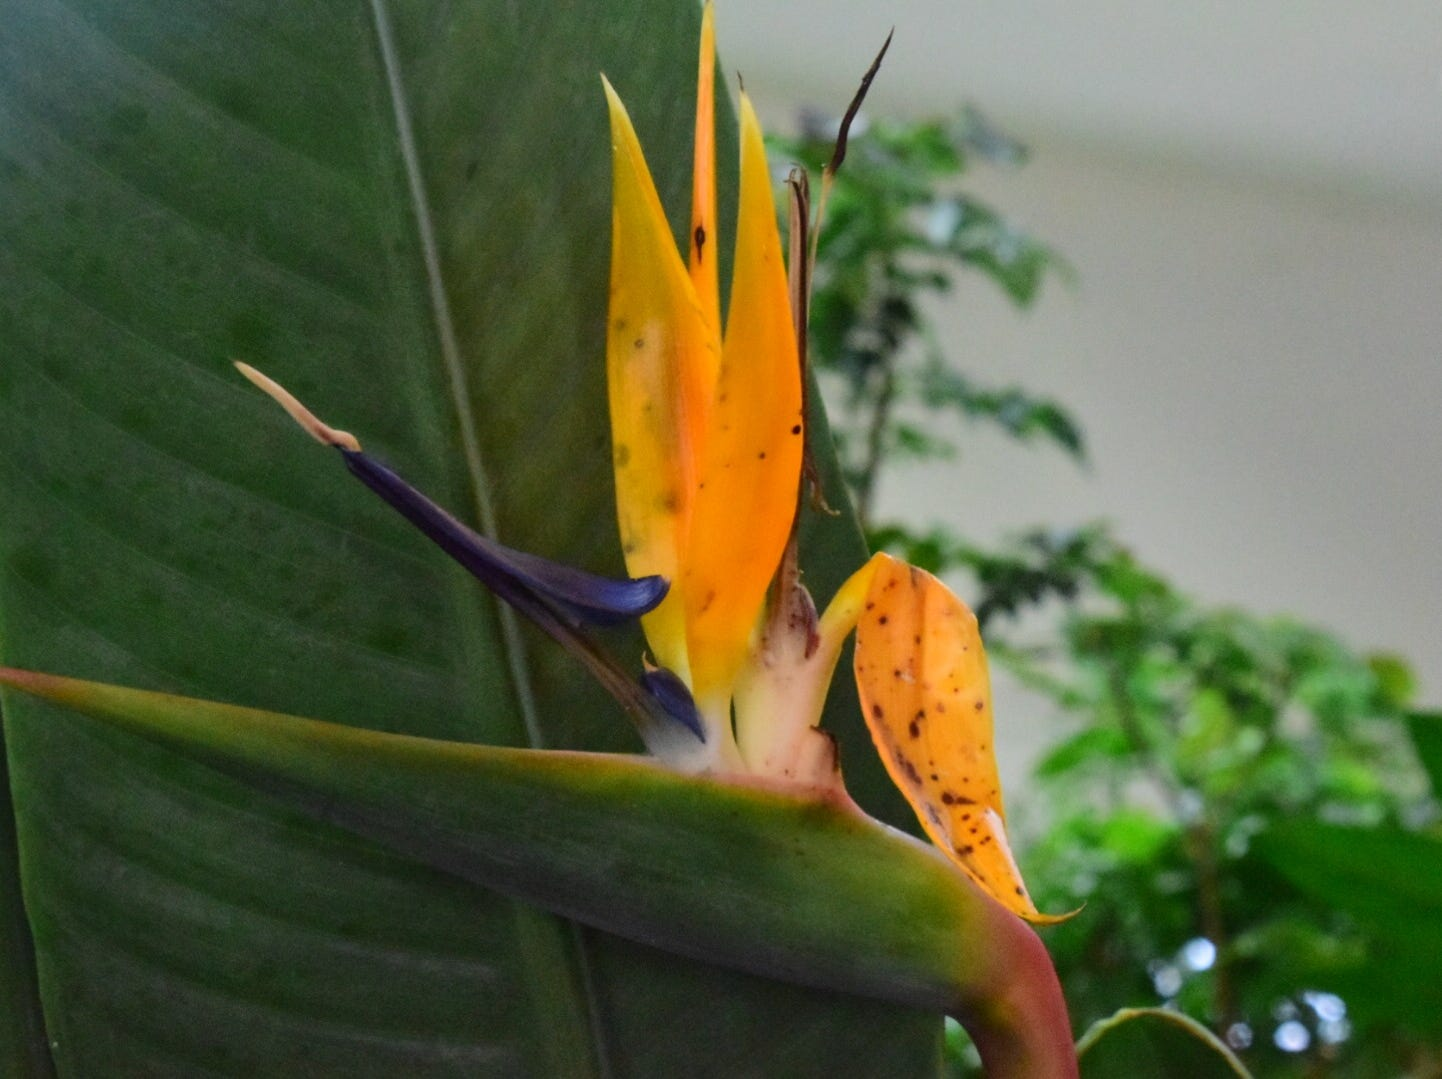 A Bird of Paradise is an unusual plant because it sends up multiple flowers from the same pod.